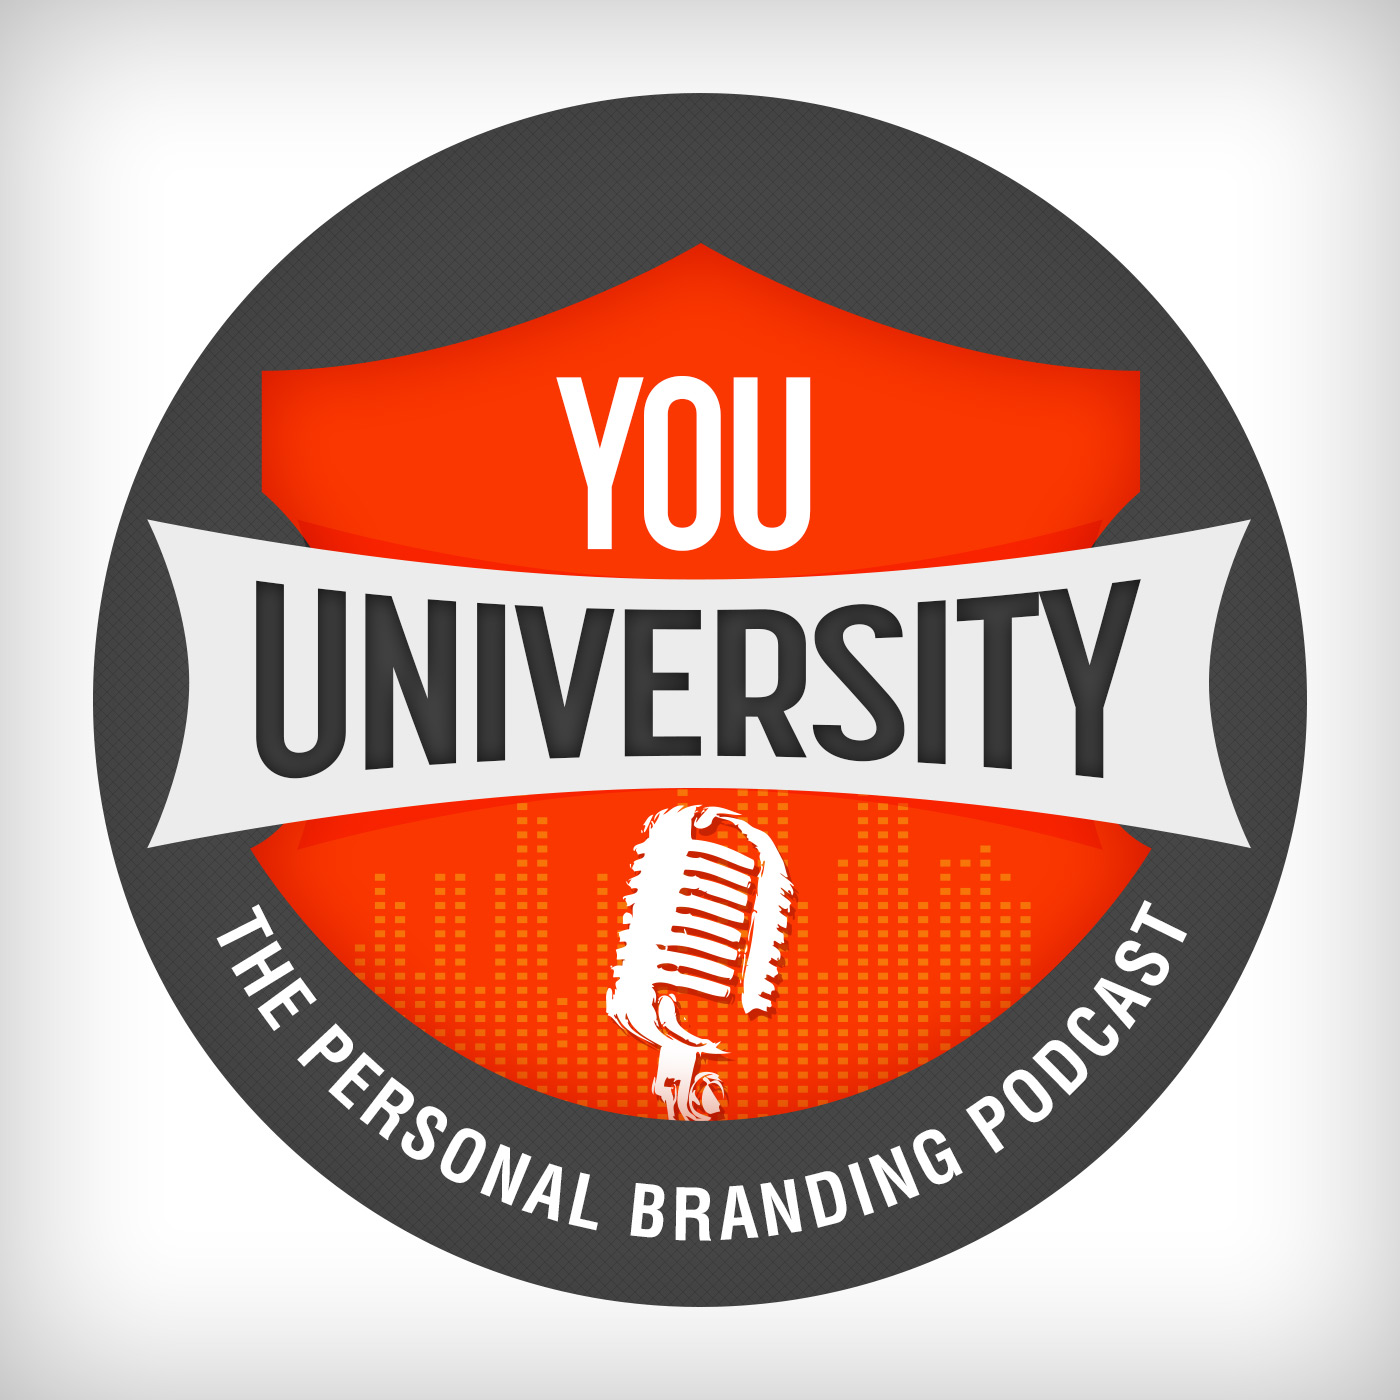 You University | The Personal Branding Podcast  show art